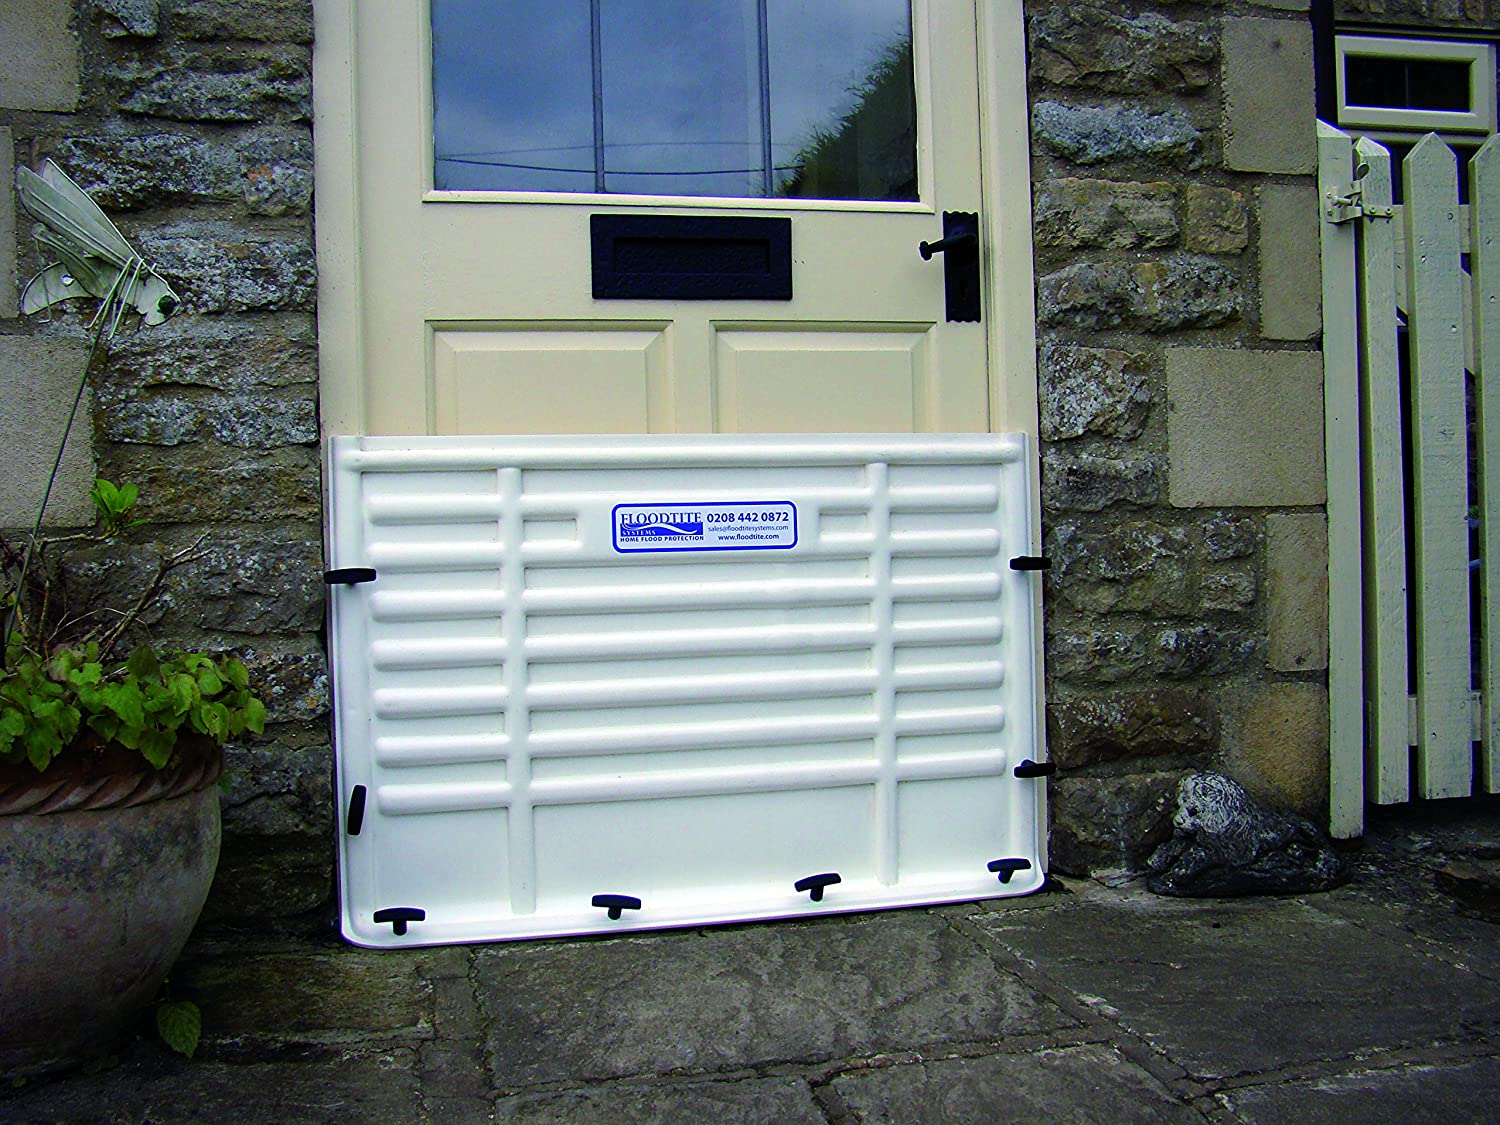 Floodtite 900mm Kitemarked Flood Protection Door Panel